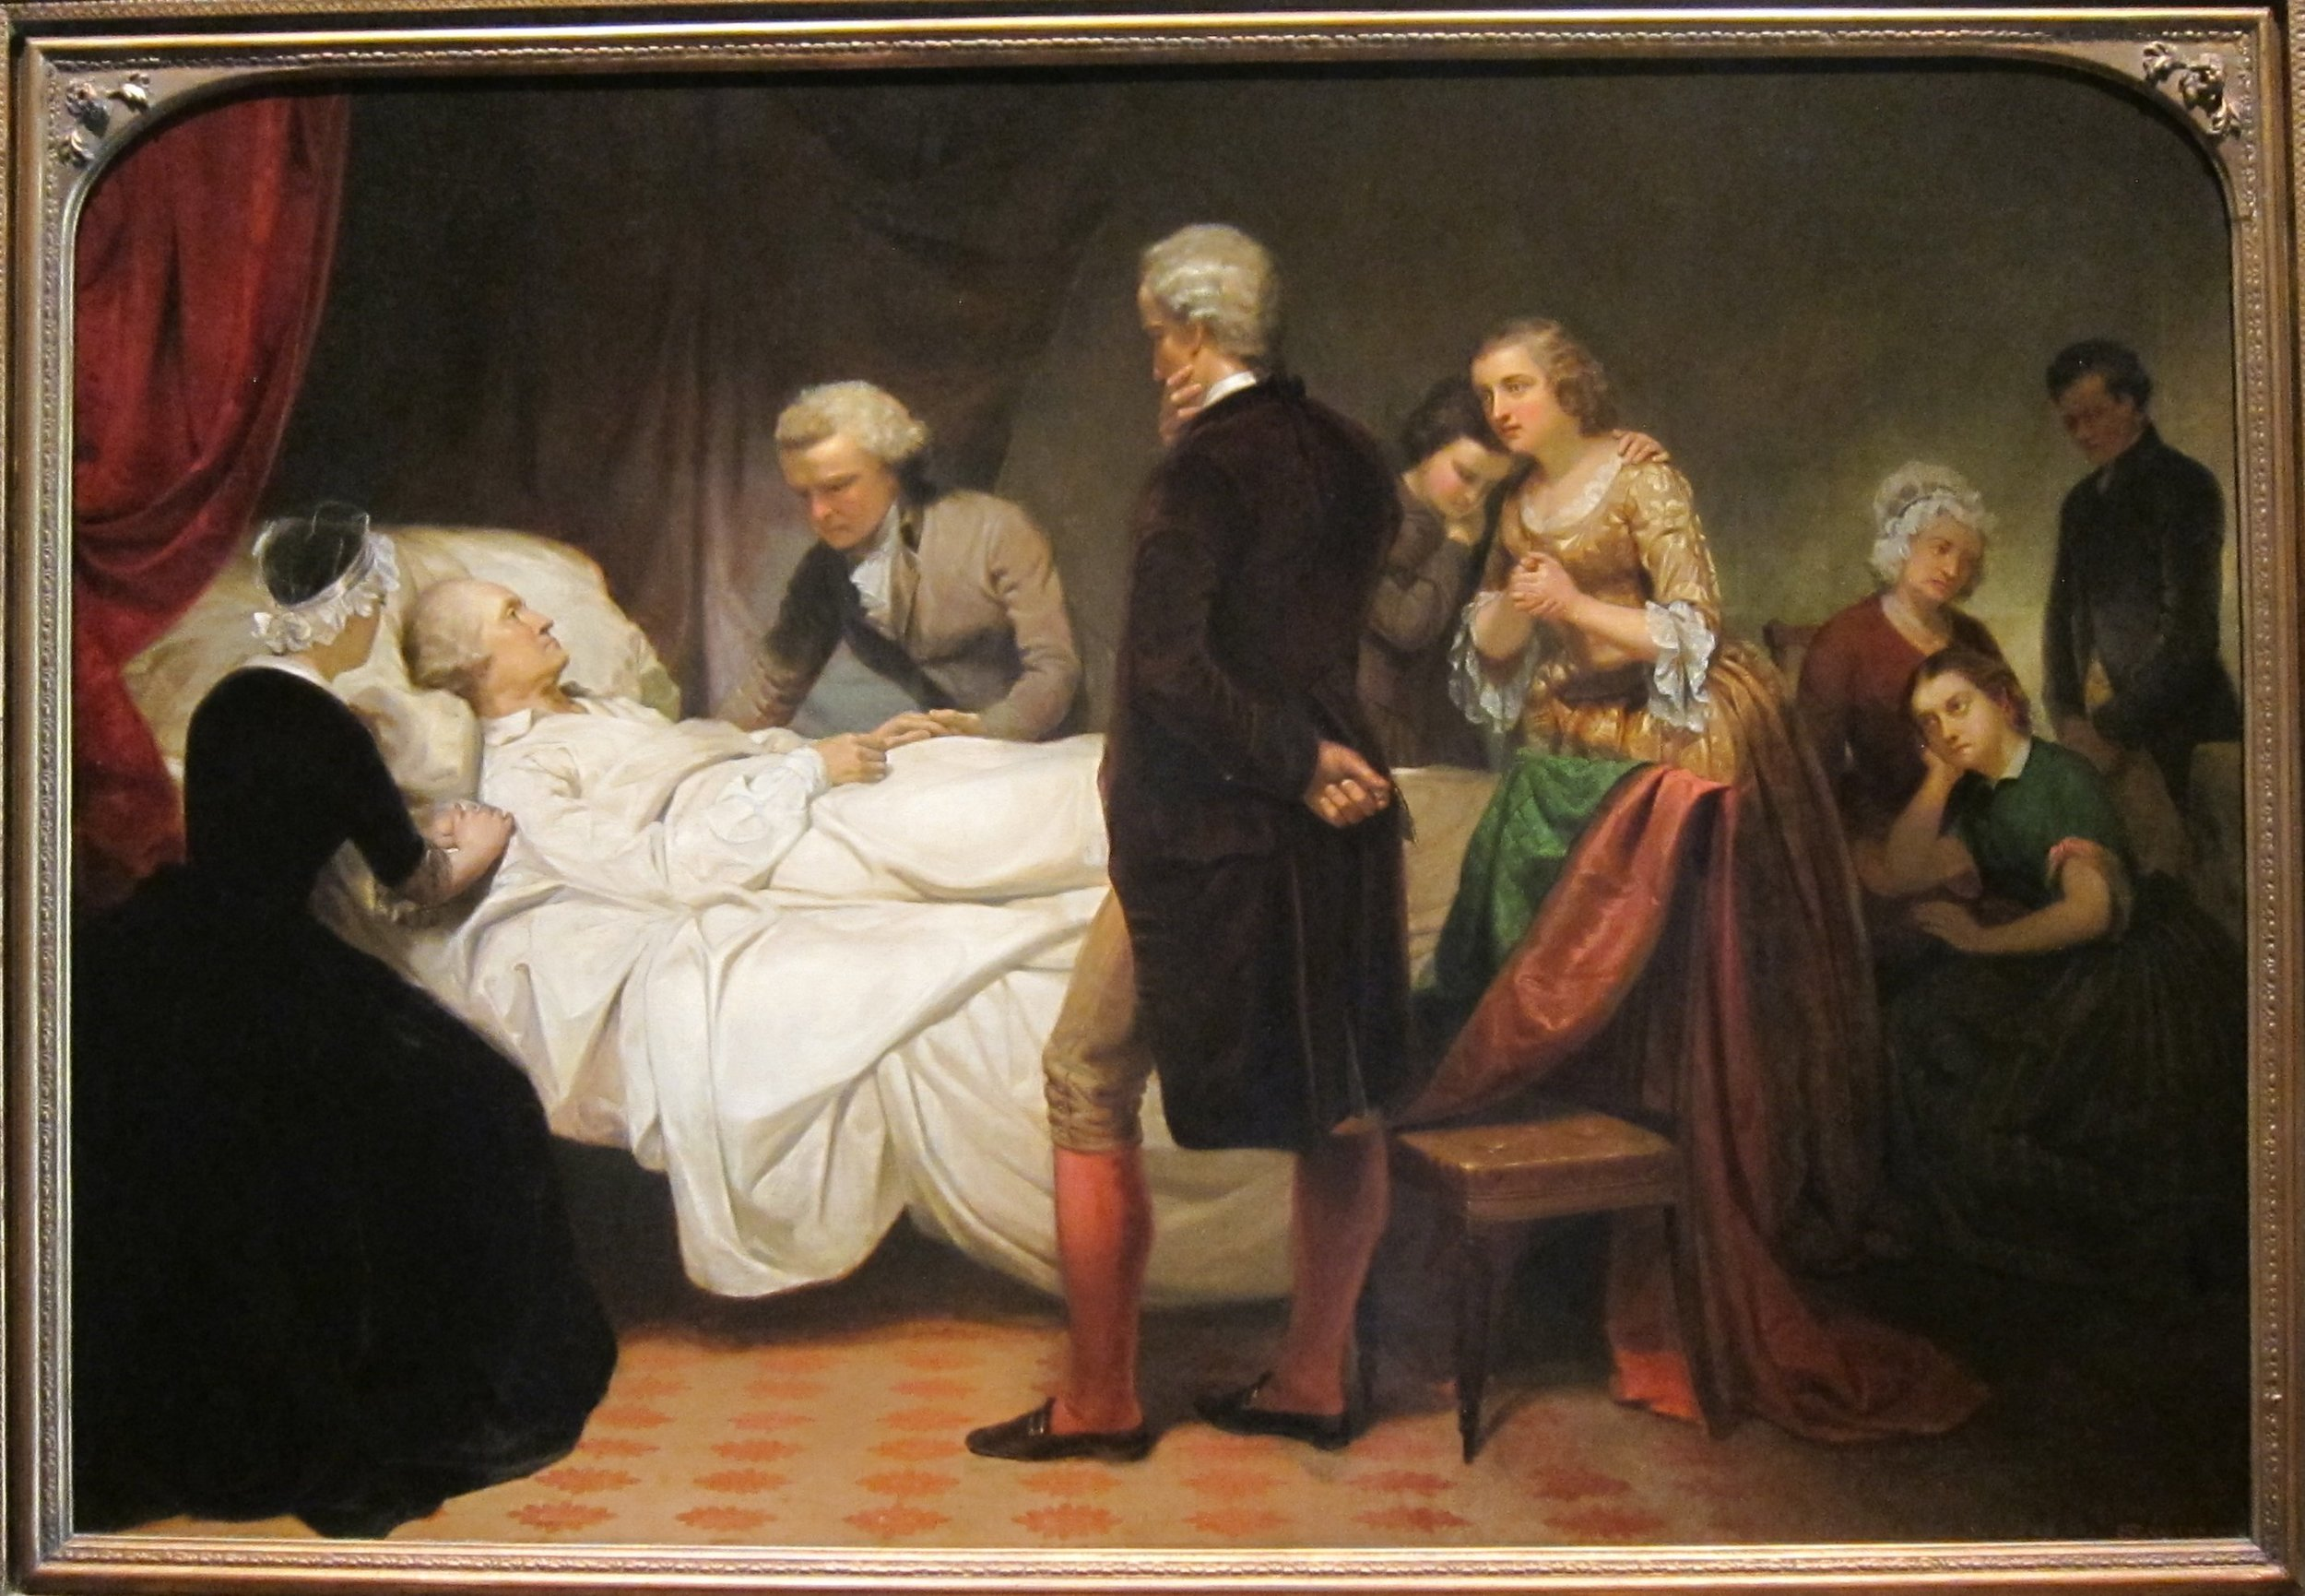 George Washington on his Deathbed by Junius Brutus Stearns. 1851.